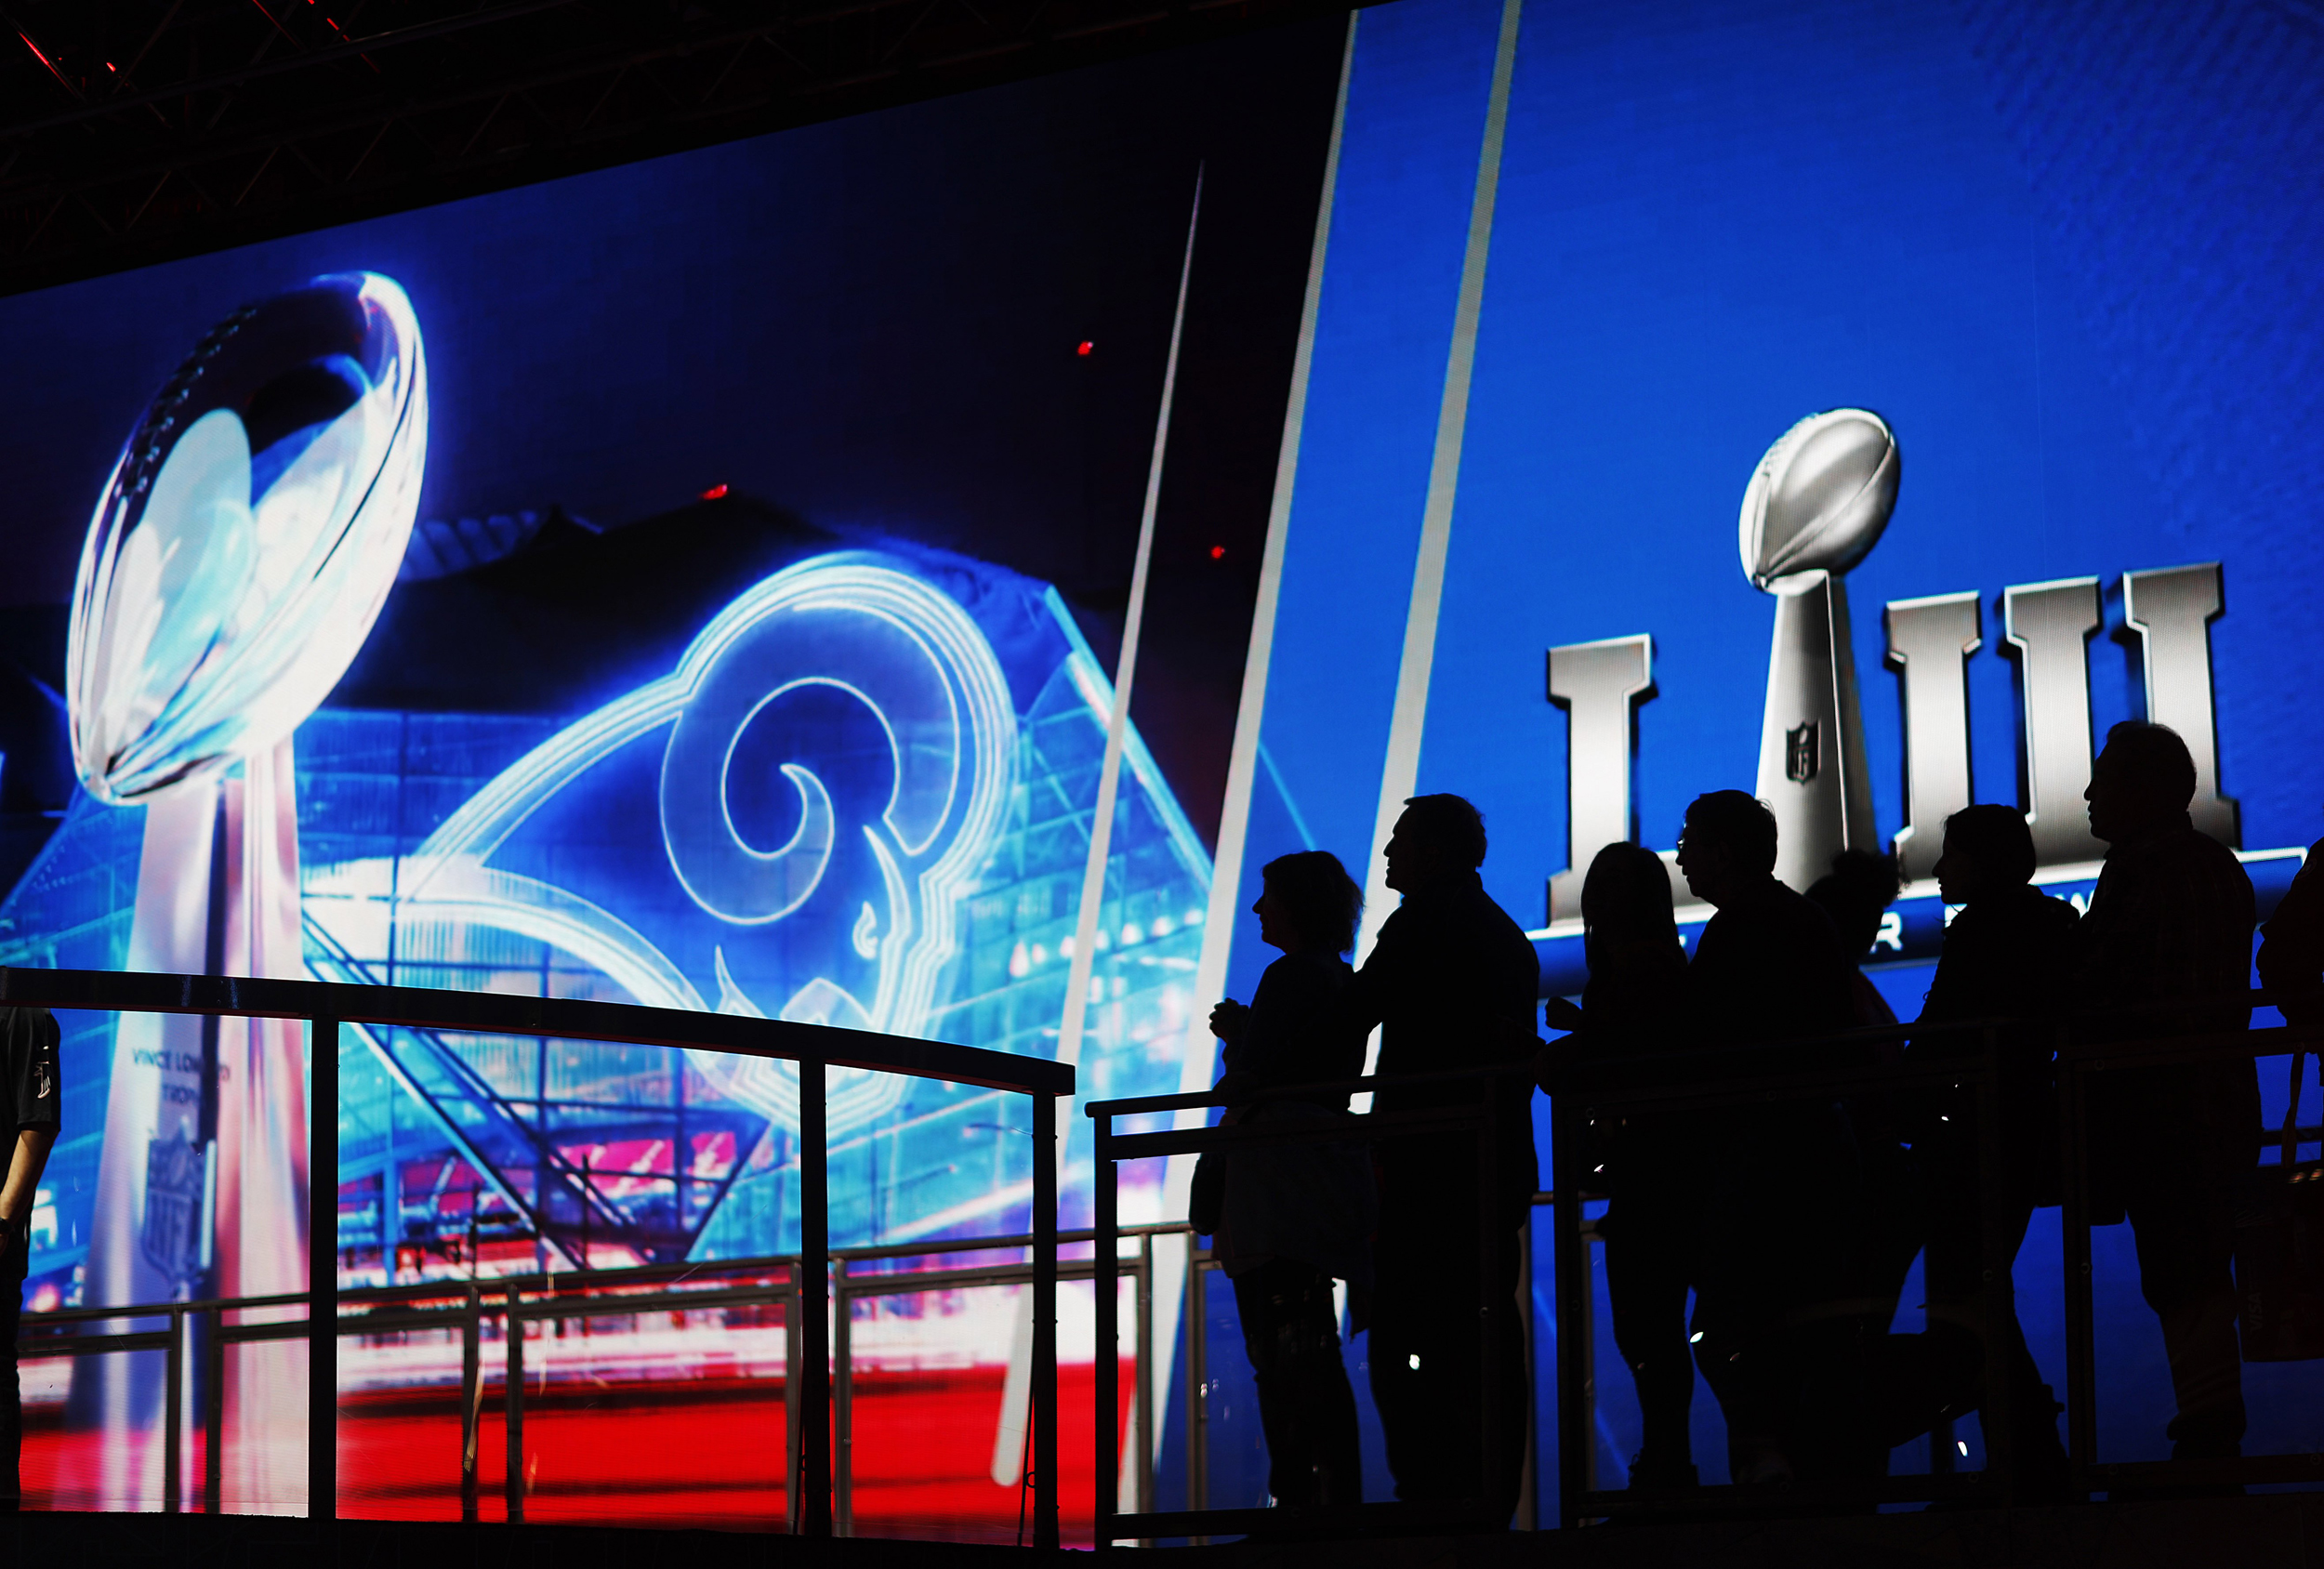 Betting on the Super Bowl? The IRS will want a piece of your winnings